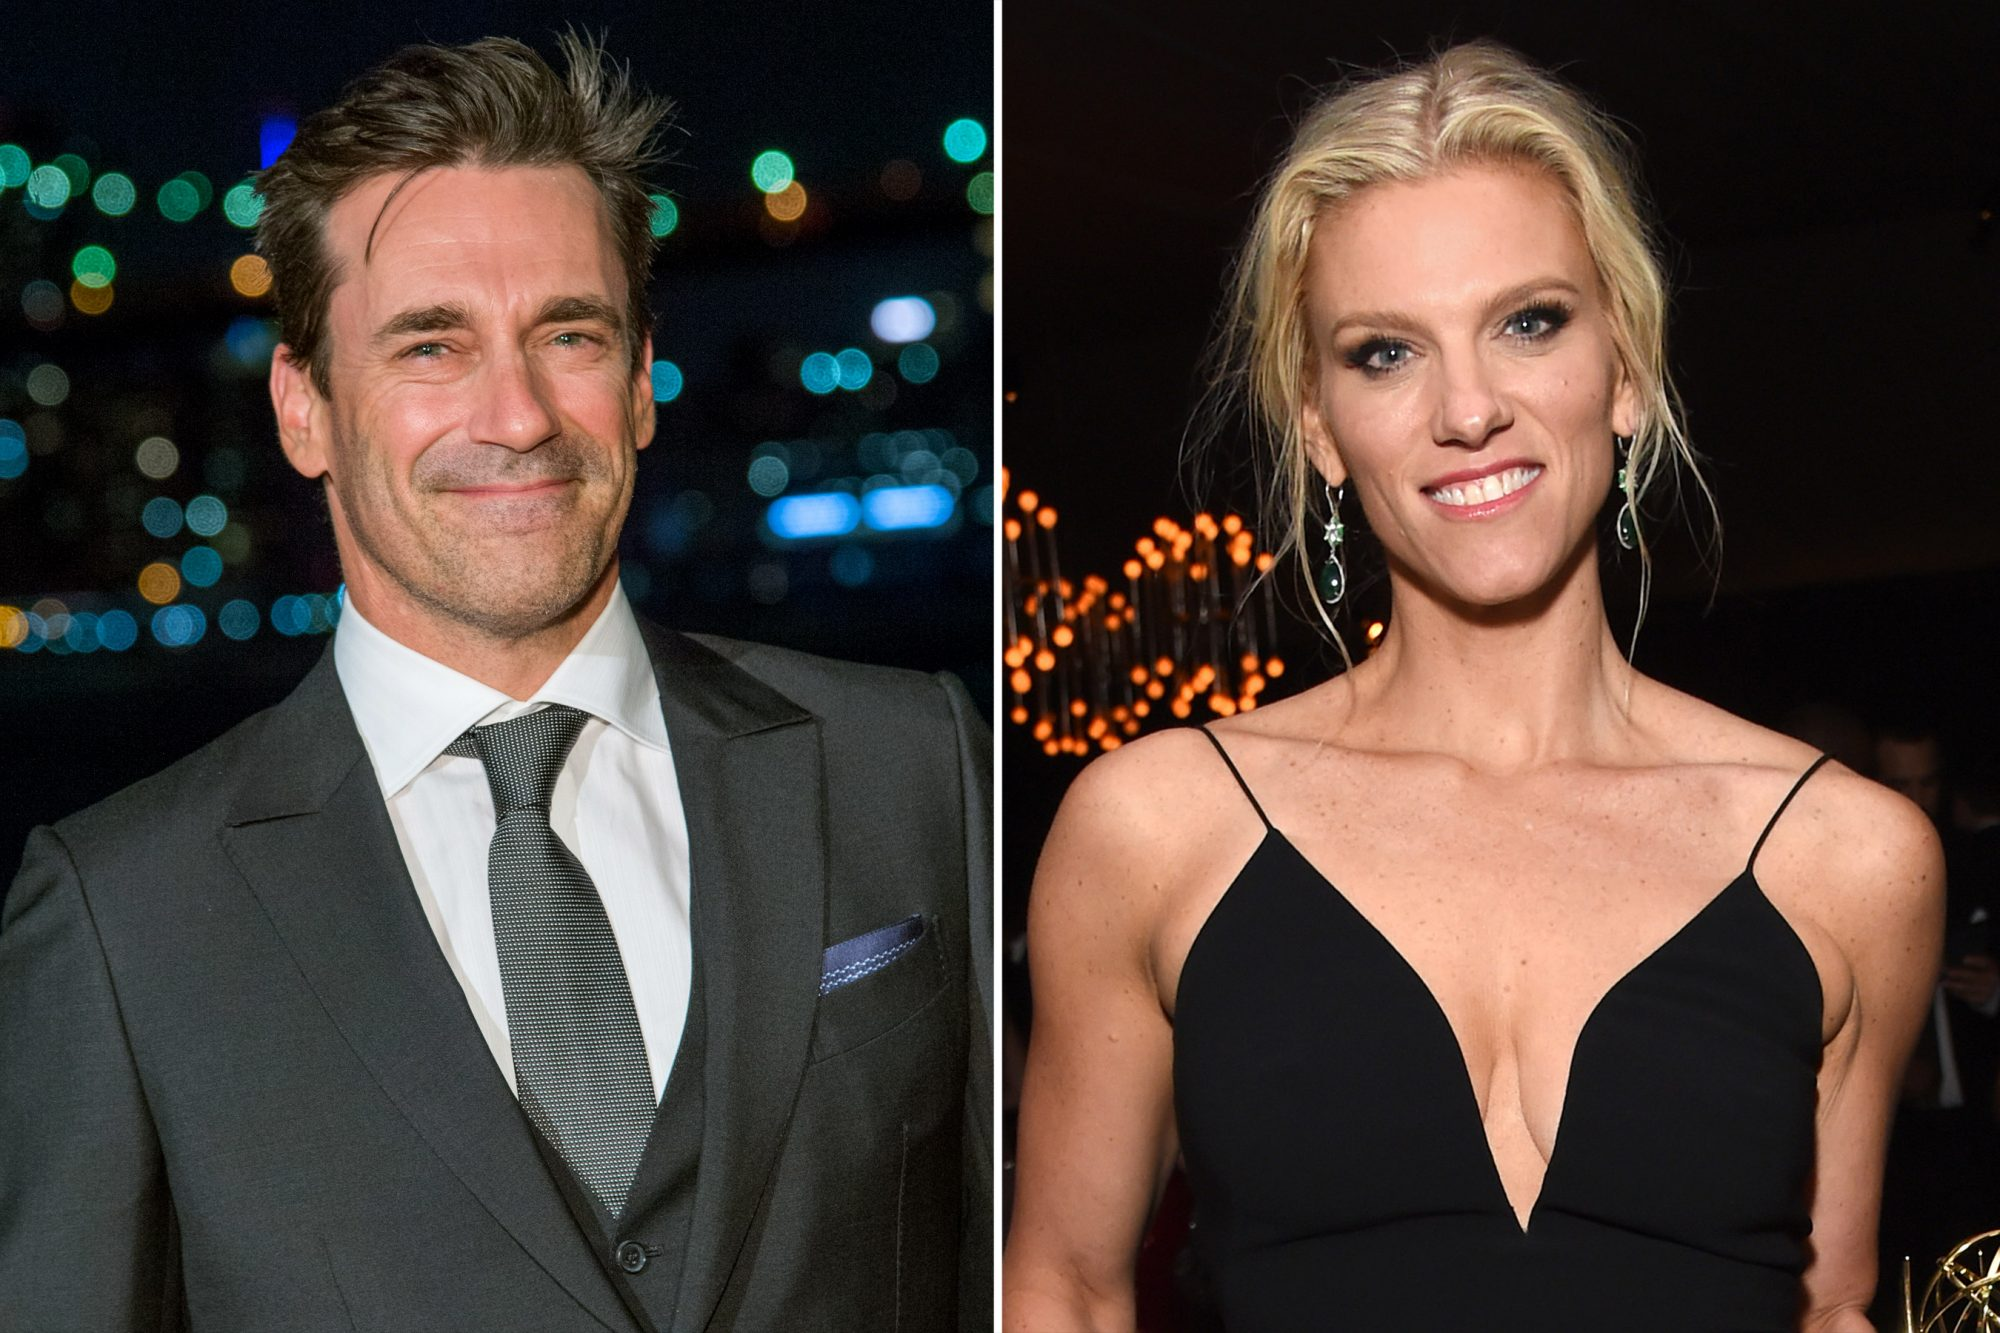 Jon Hamm and Lindsay Shookus